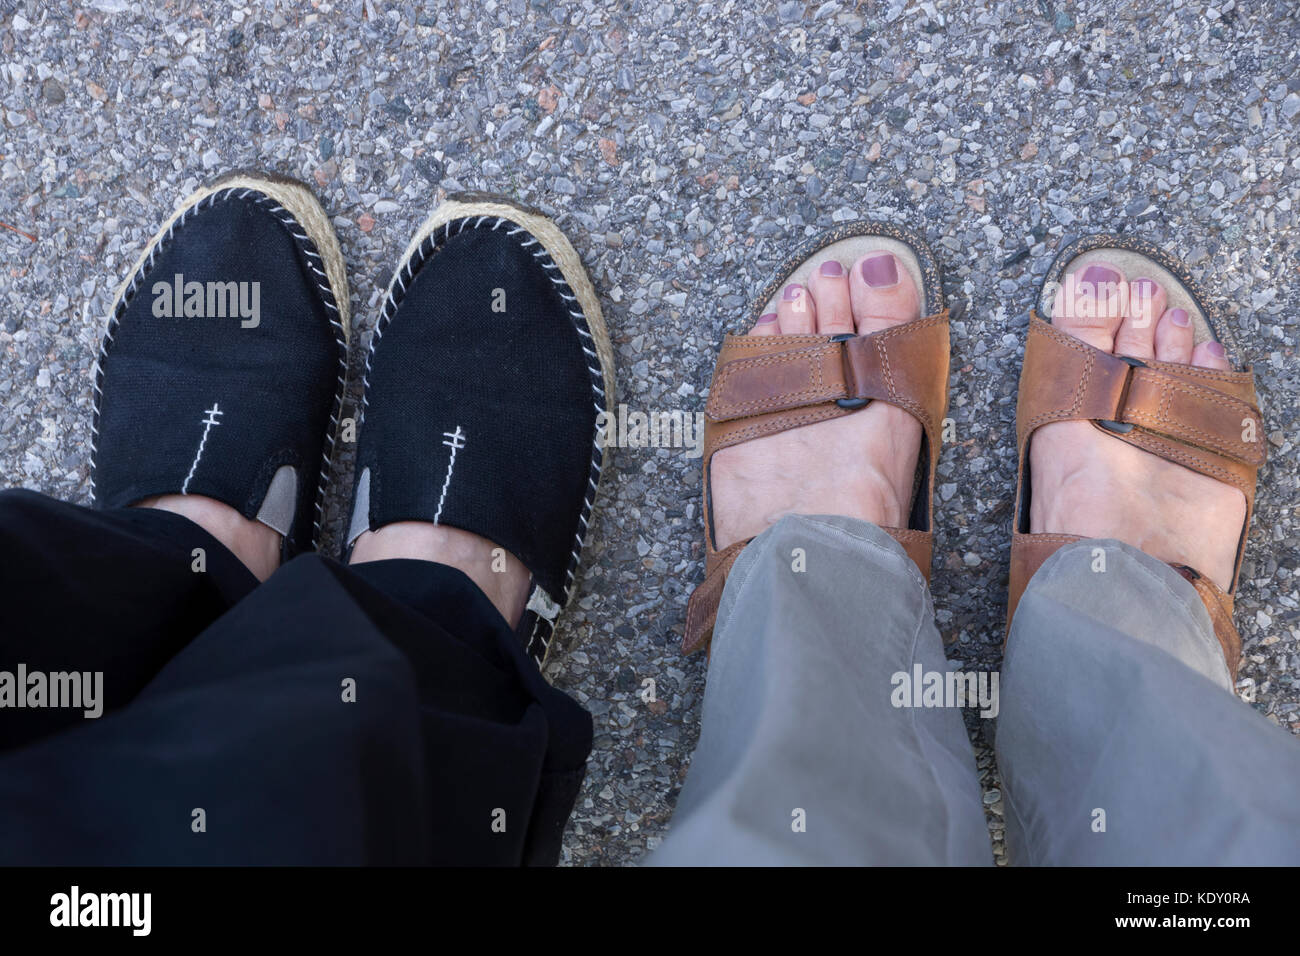 Casual summer footwear choices:  women's closed-toe shoes (espadrilles) and open-toe sandals. - Stock Image